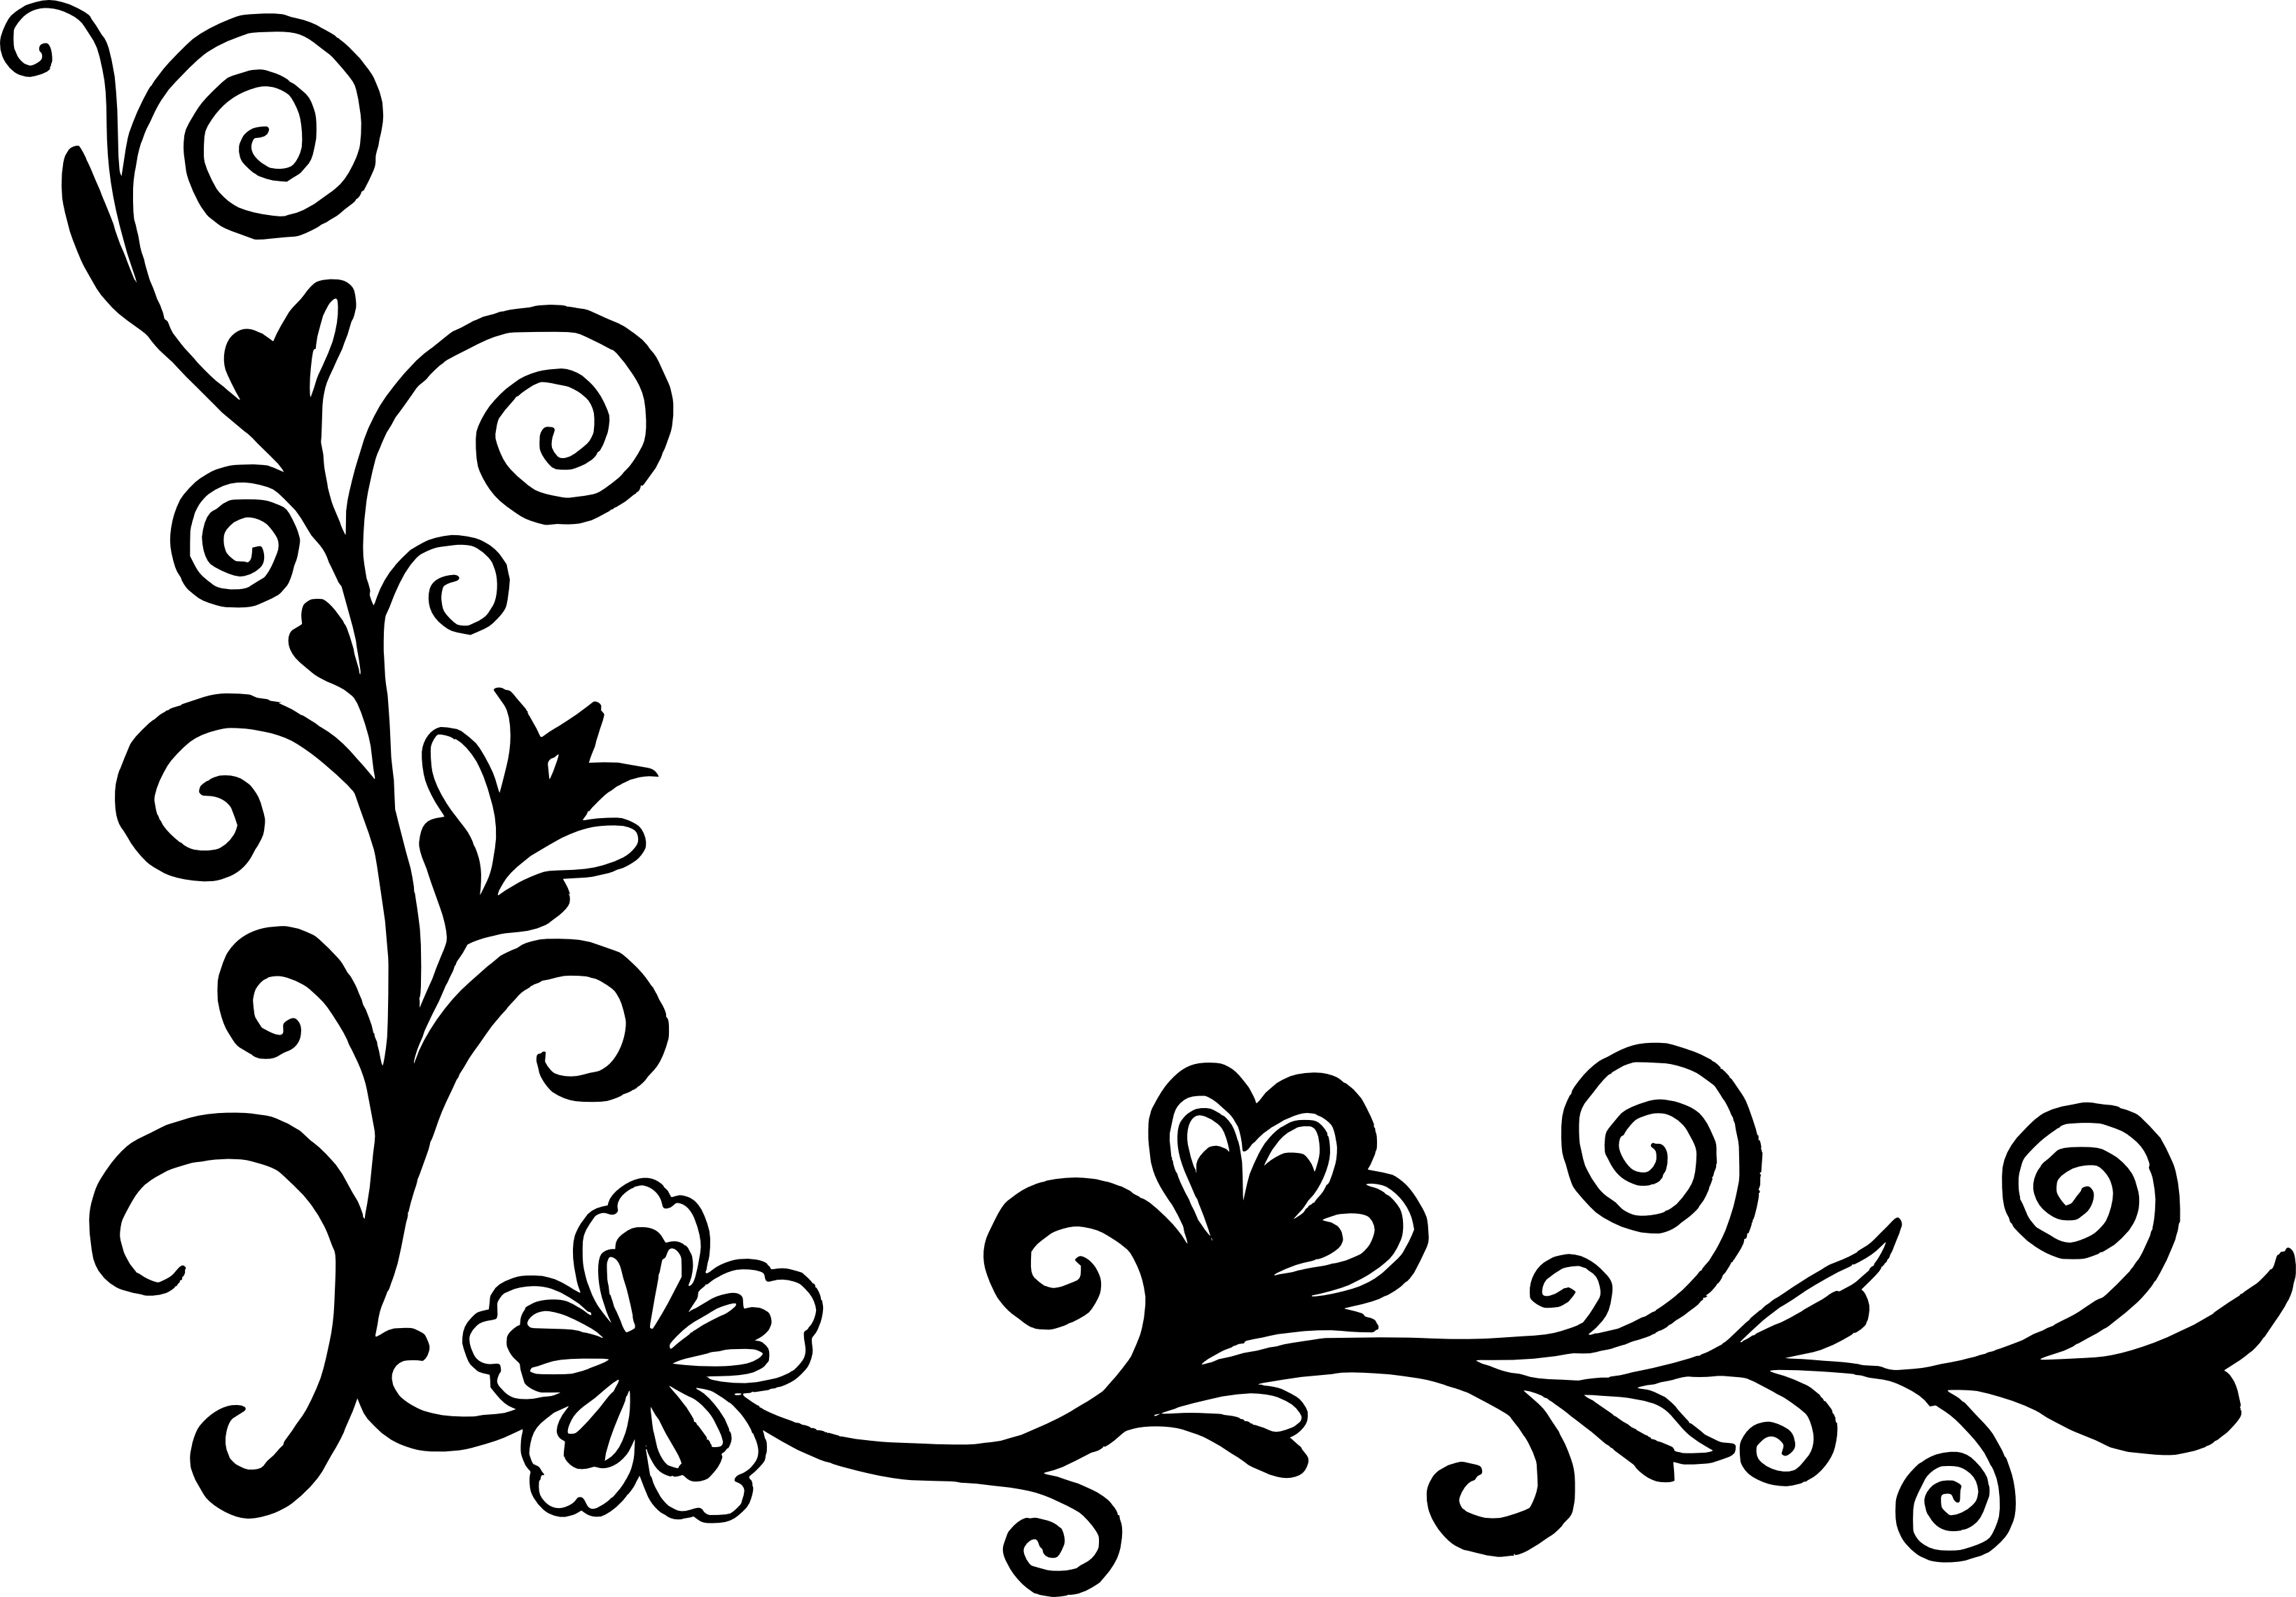 White flowers corner border clipart svg free stock Flower corner border black and white clipart images gallery ... svg free stock